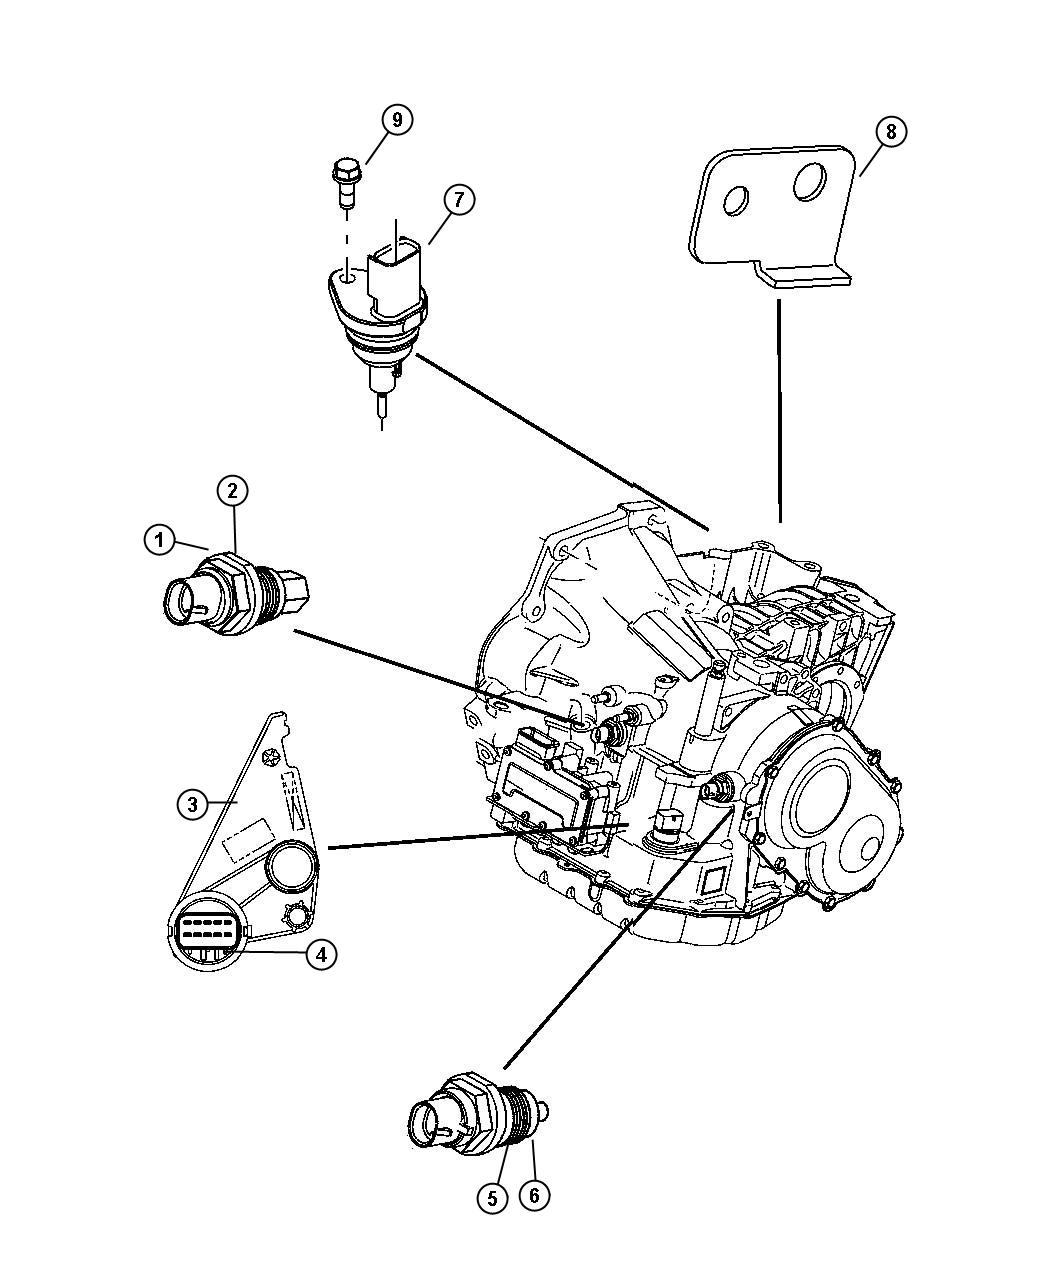 2003 Lexus Rx300 Fuel Filter Location Car Pt Cruiser Rx330 Wiring Diagram And Engine